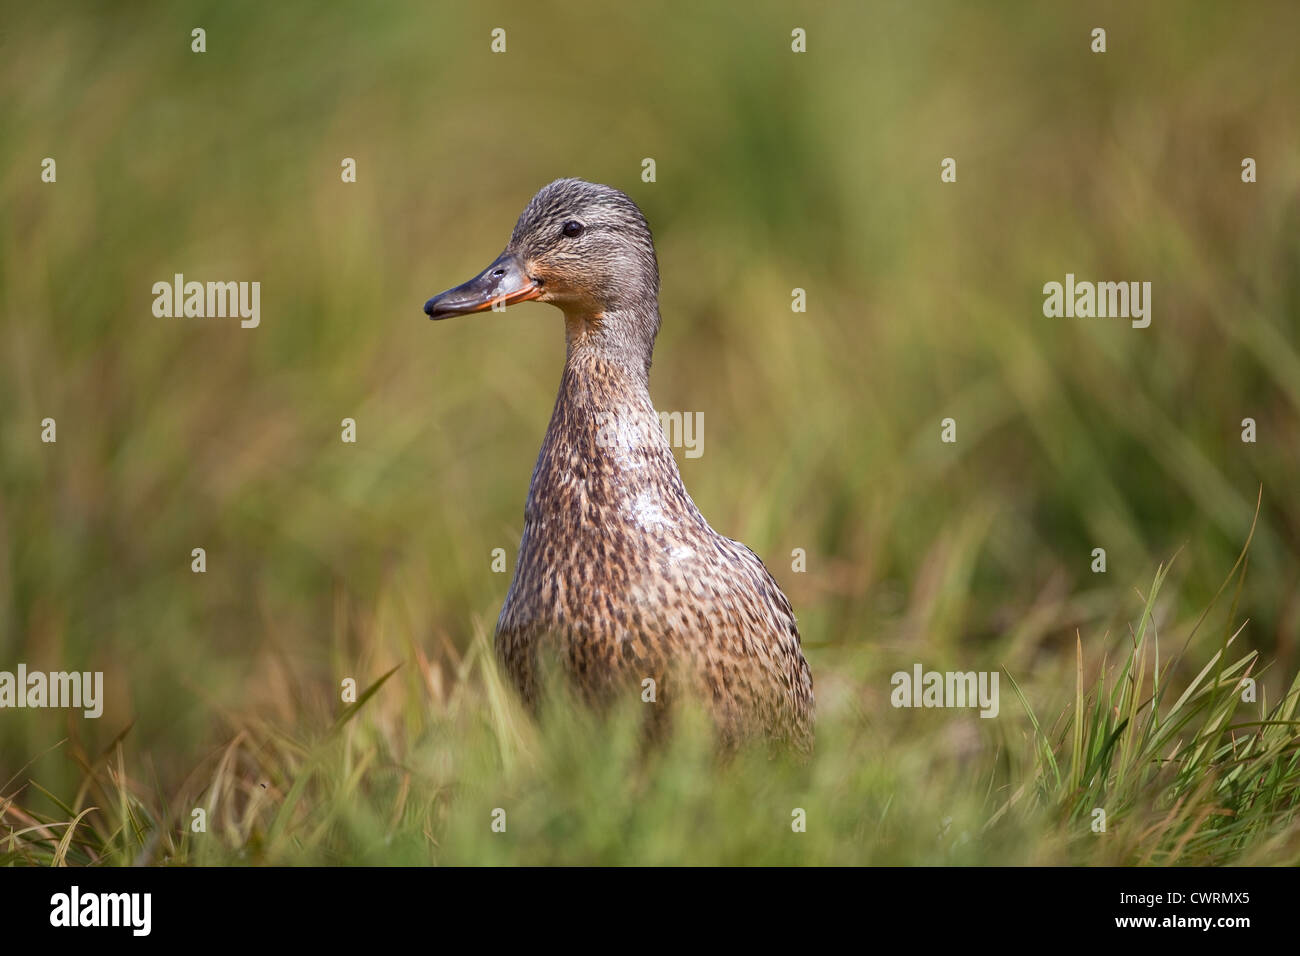 Female Mallard duck Anas Platyrhynchos close up in long grass - Stock Image